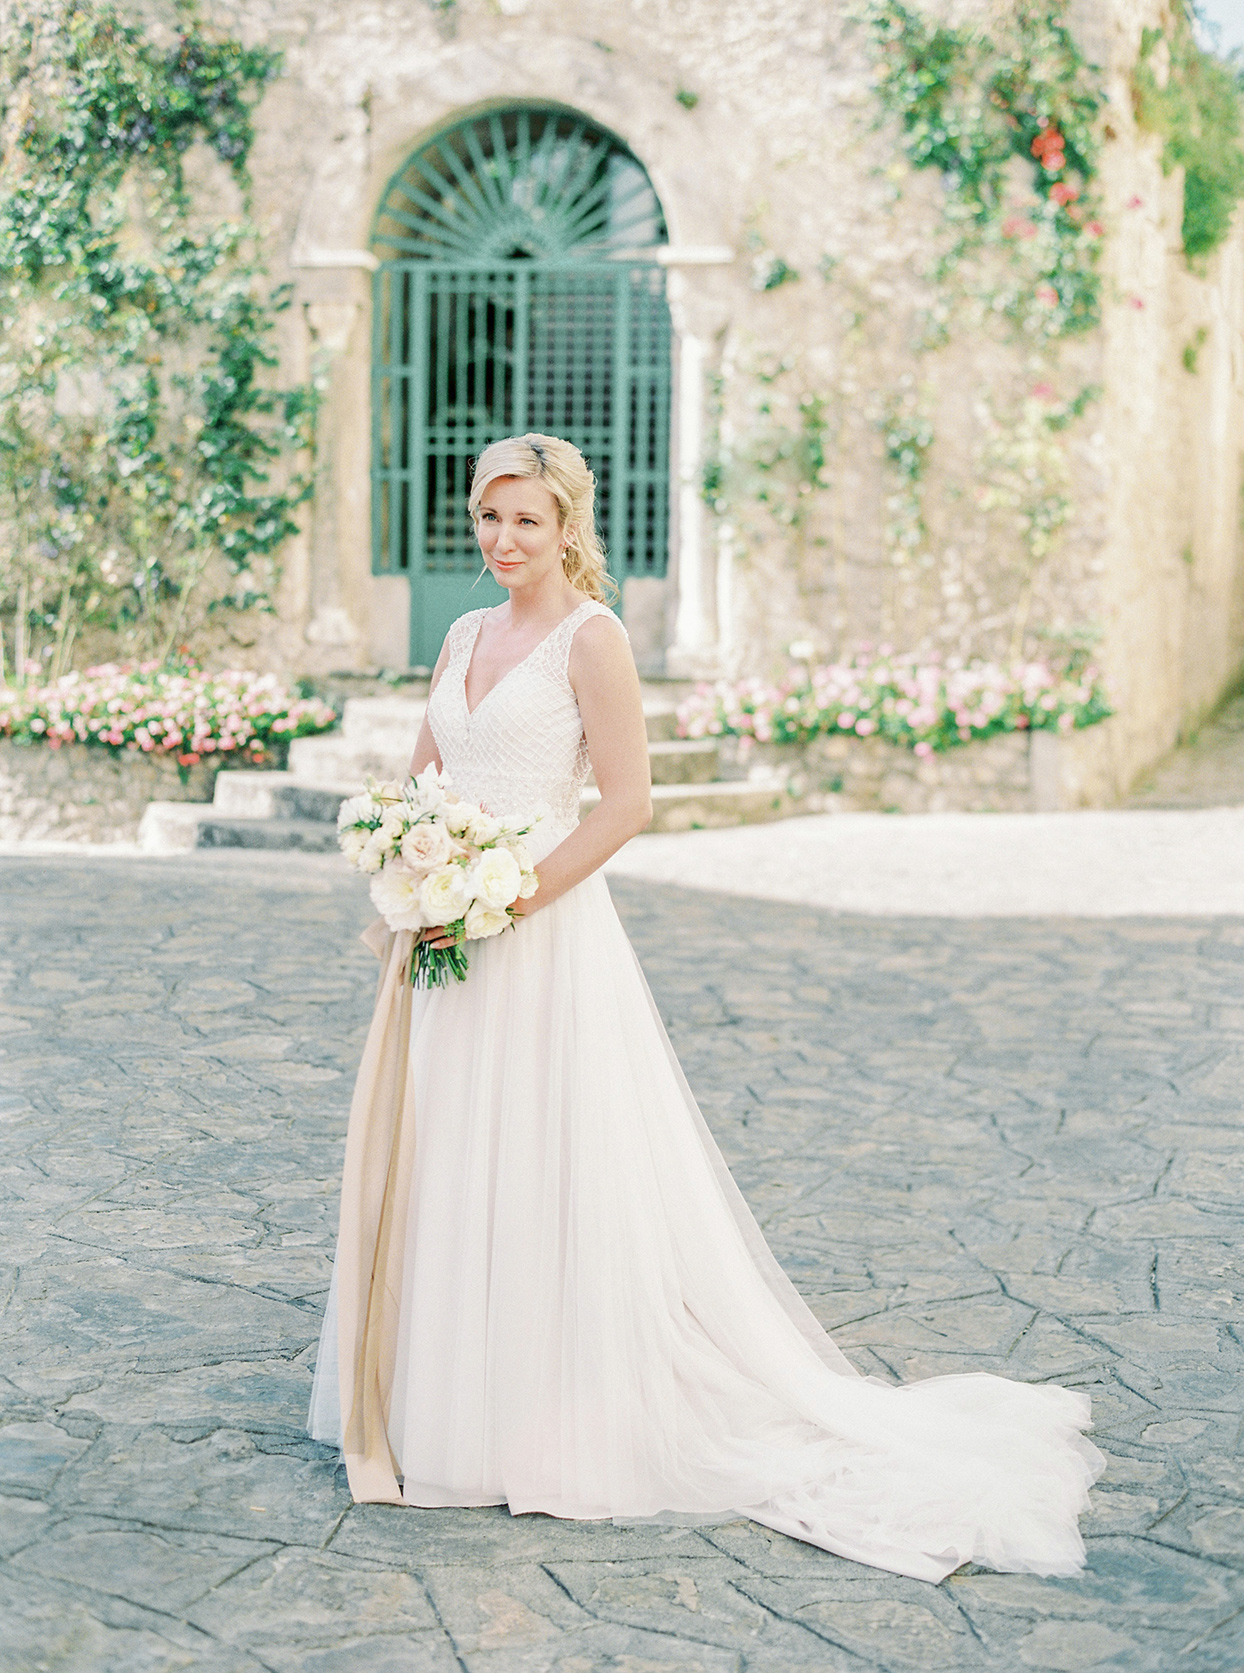 krystyna alexander wedding bride in courtyard